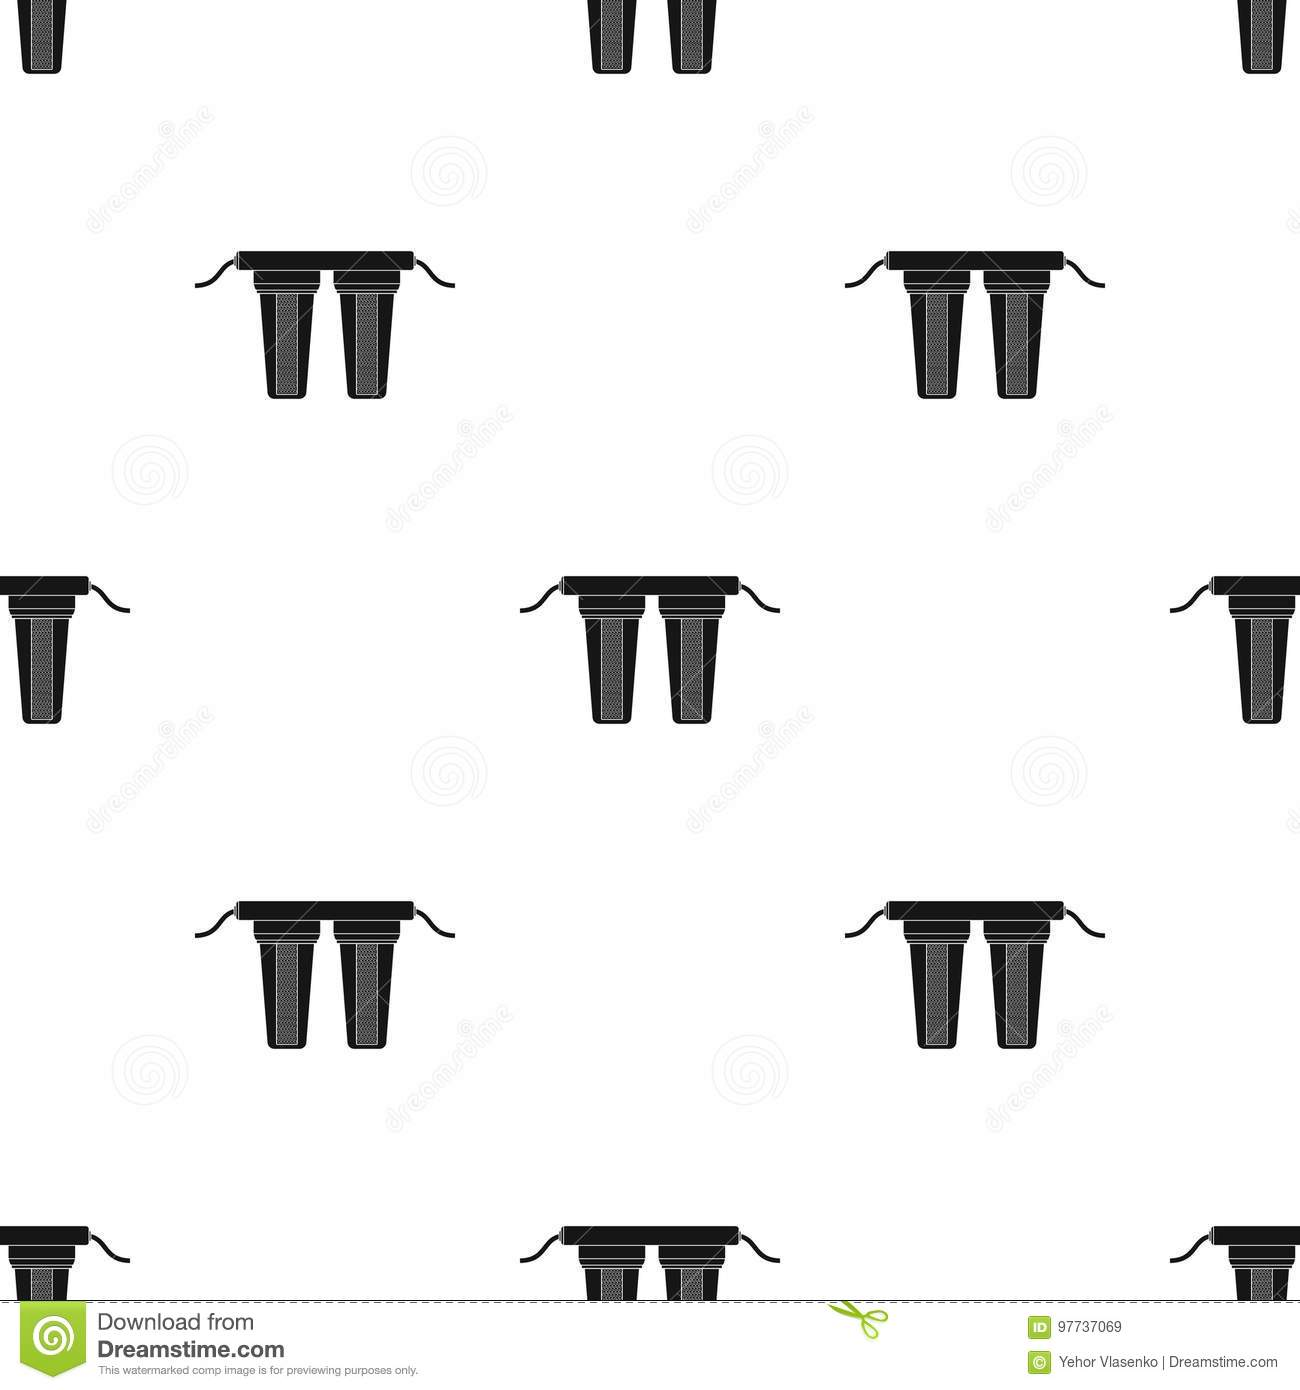 Water Filters Icon In Black Style Isolated On White Background